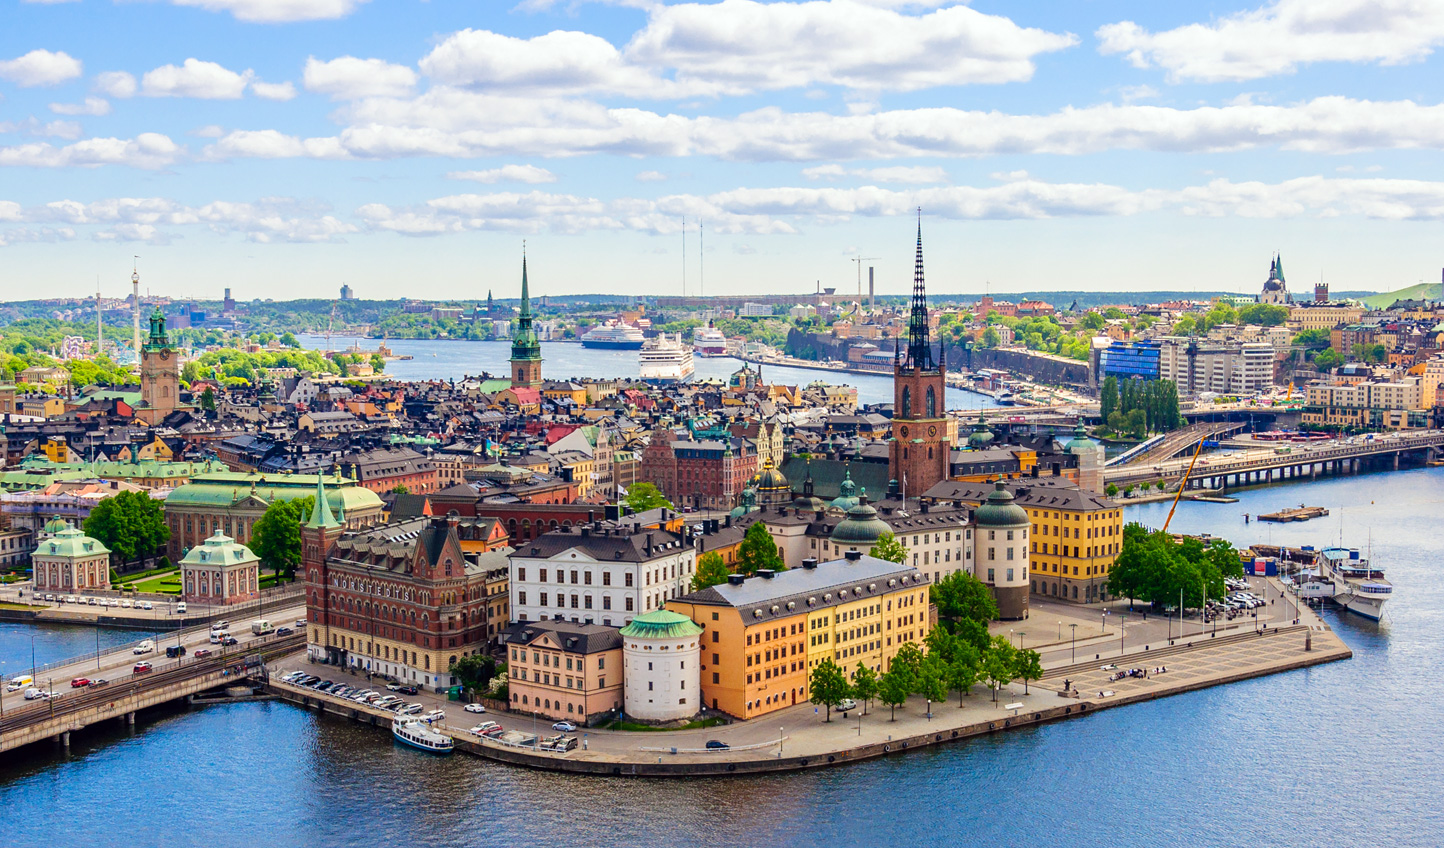 Sail into Stockholm to explore the Old Town